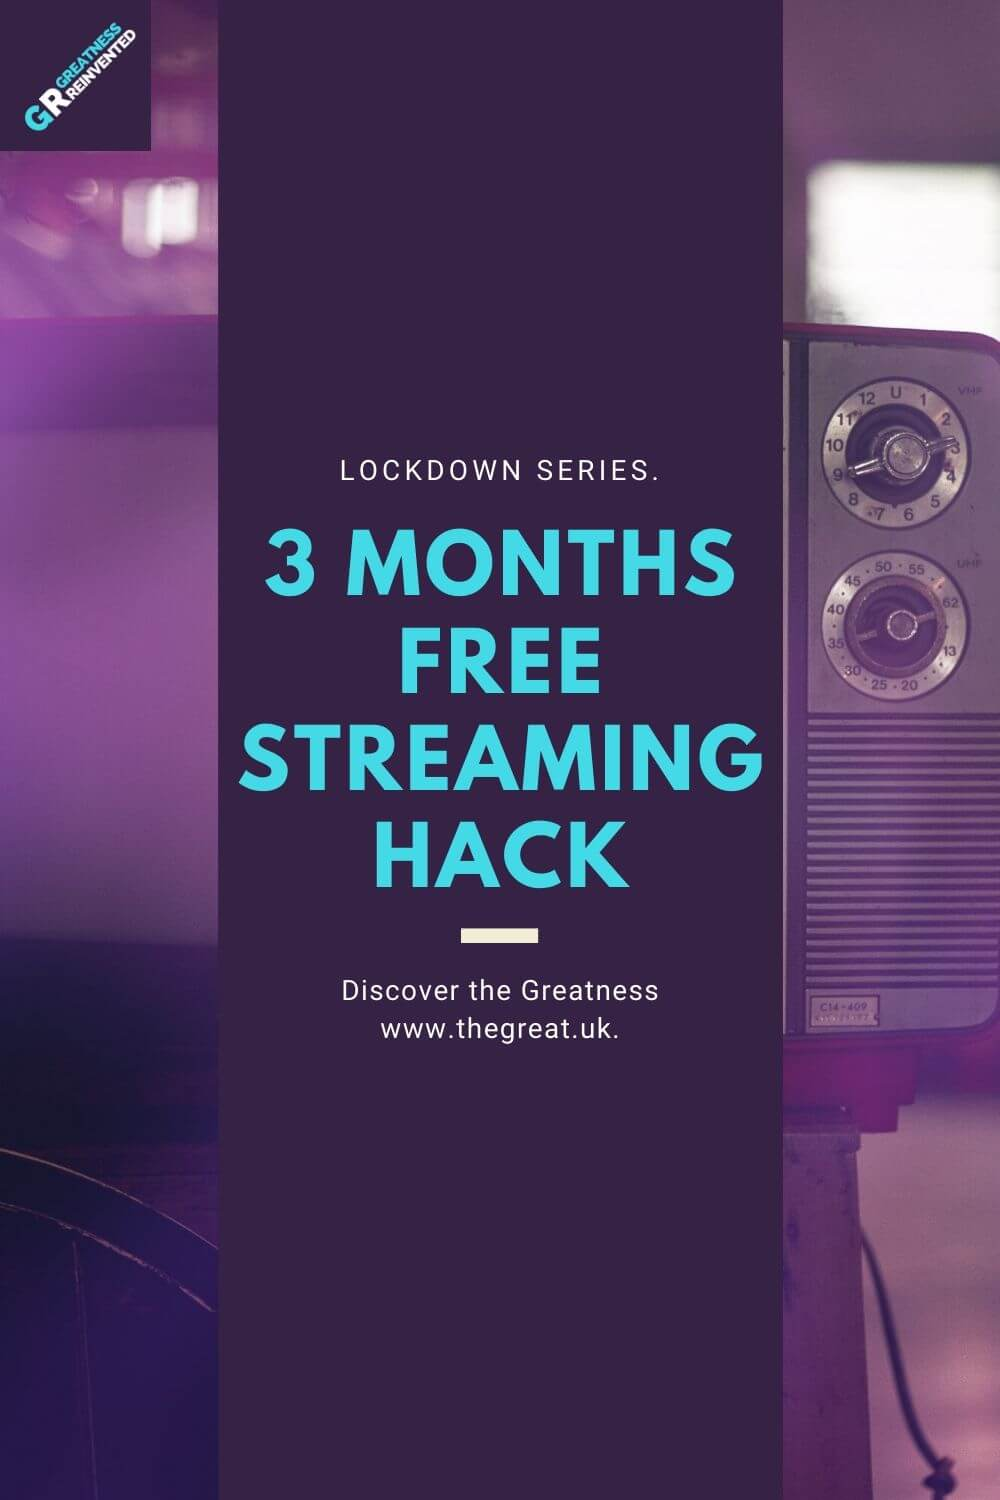 3 months free streaming hack